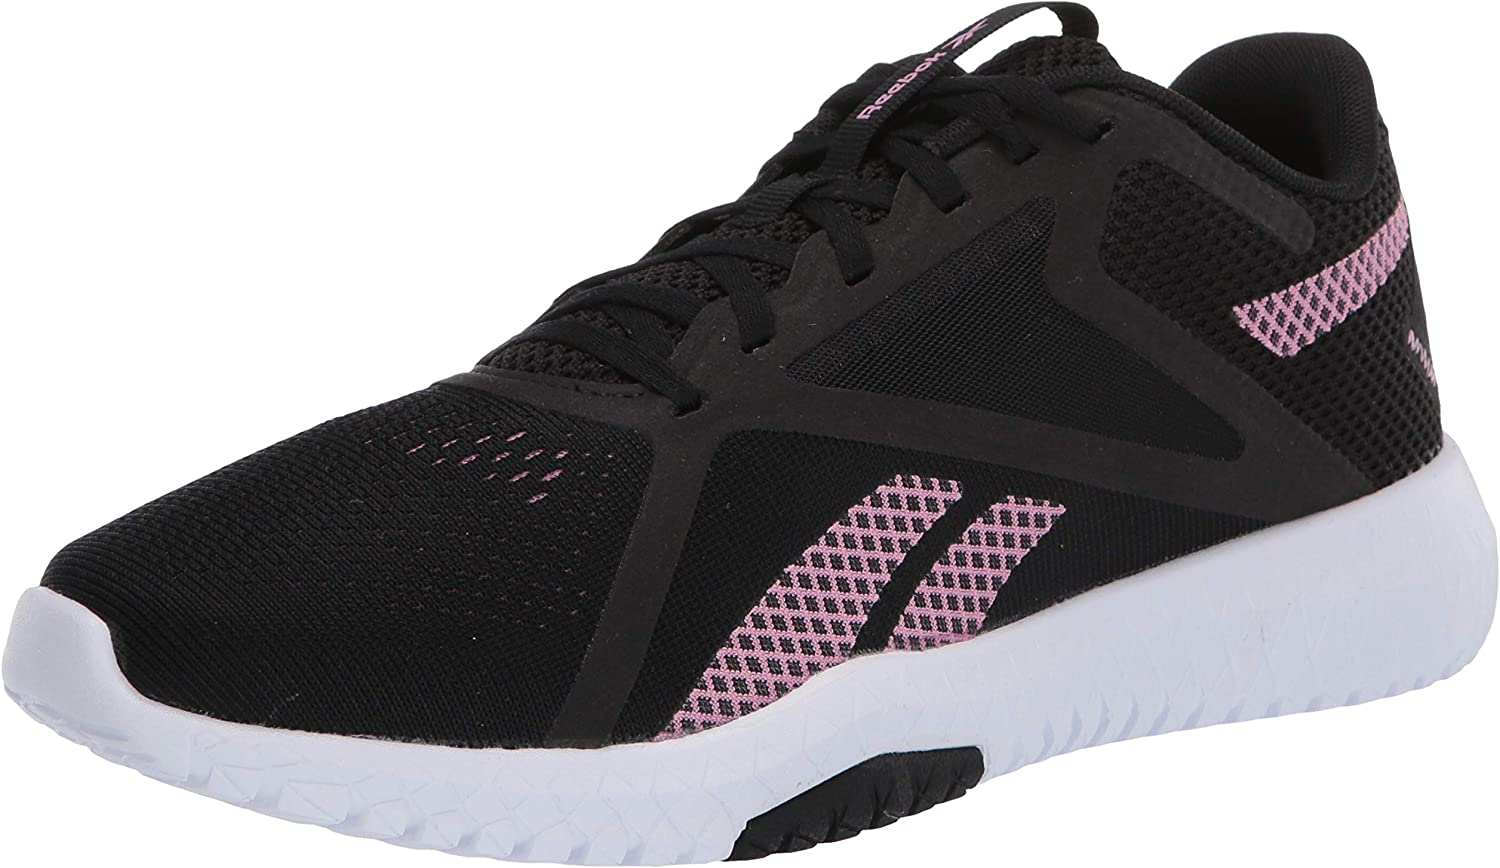 Reebok Women's Flexagon Force 2.0 D Cross Trainer